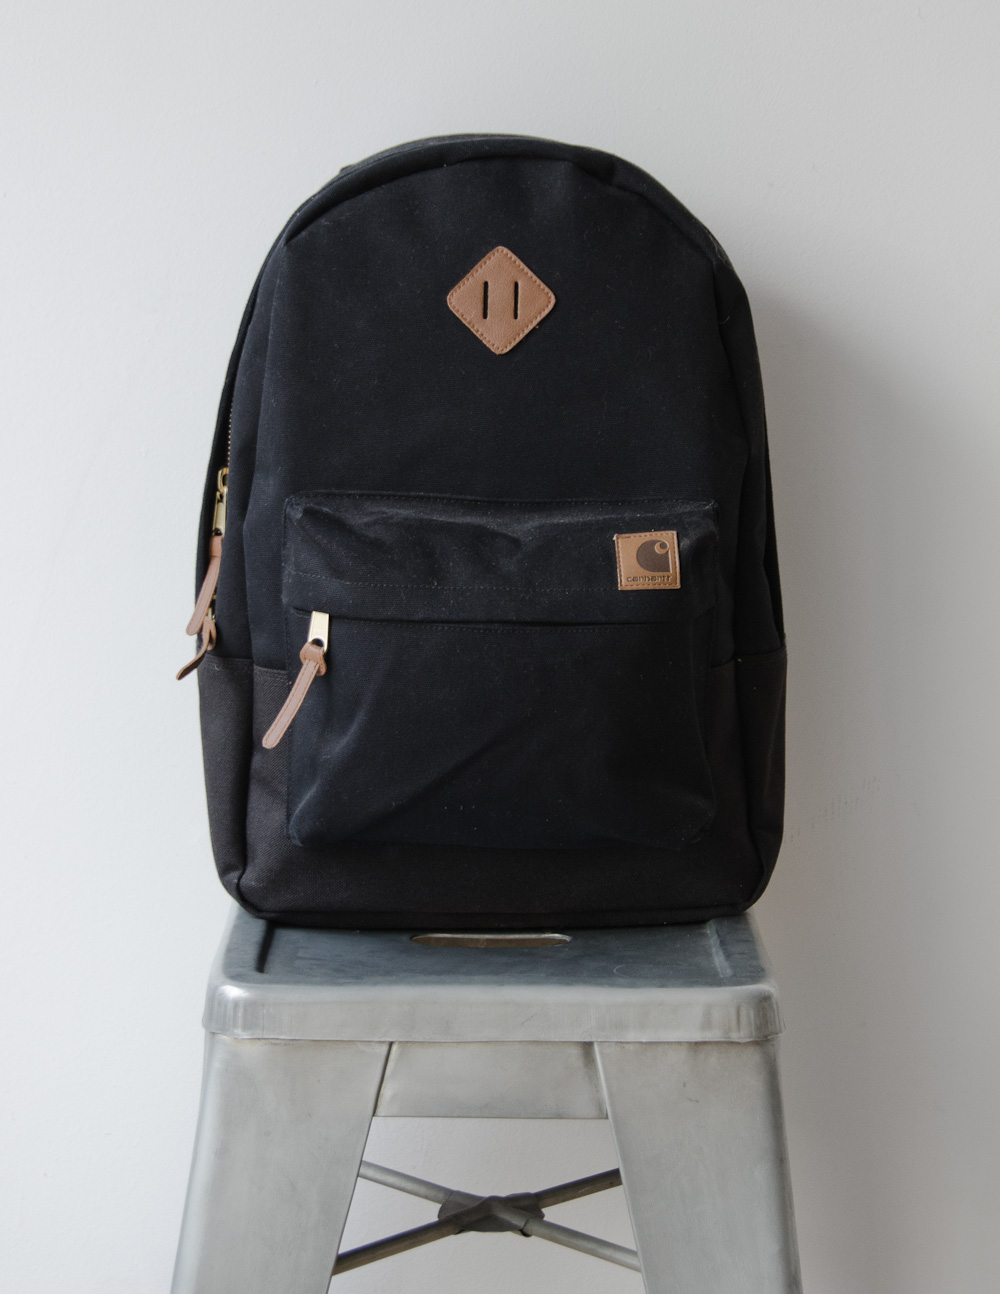 premium-picks-backpacks-2.jpg